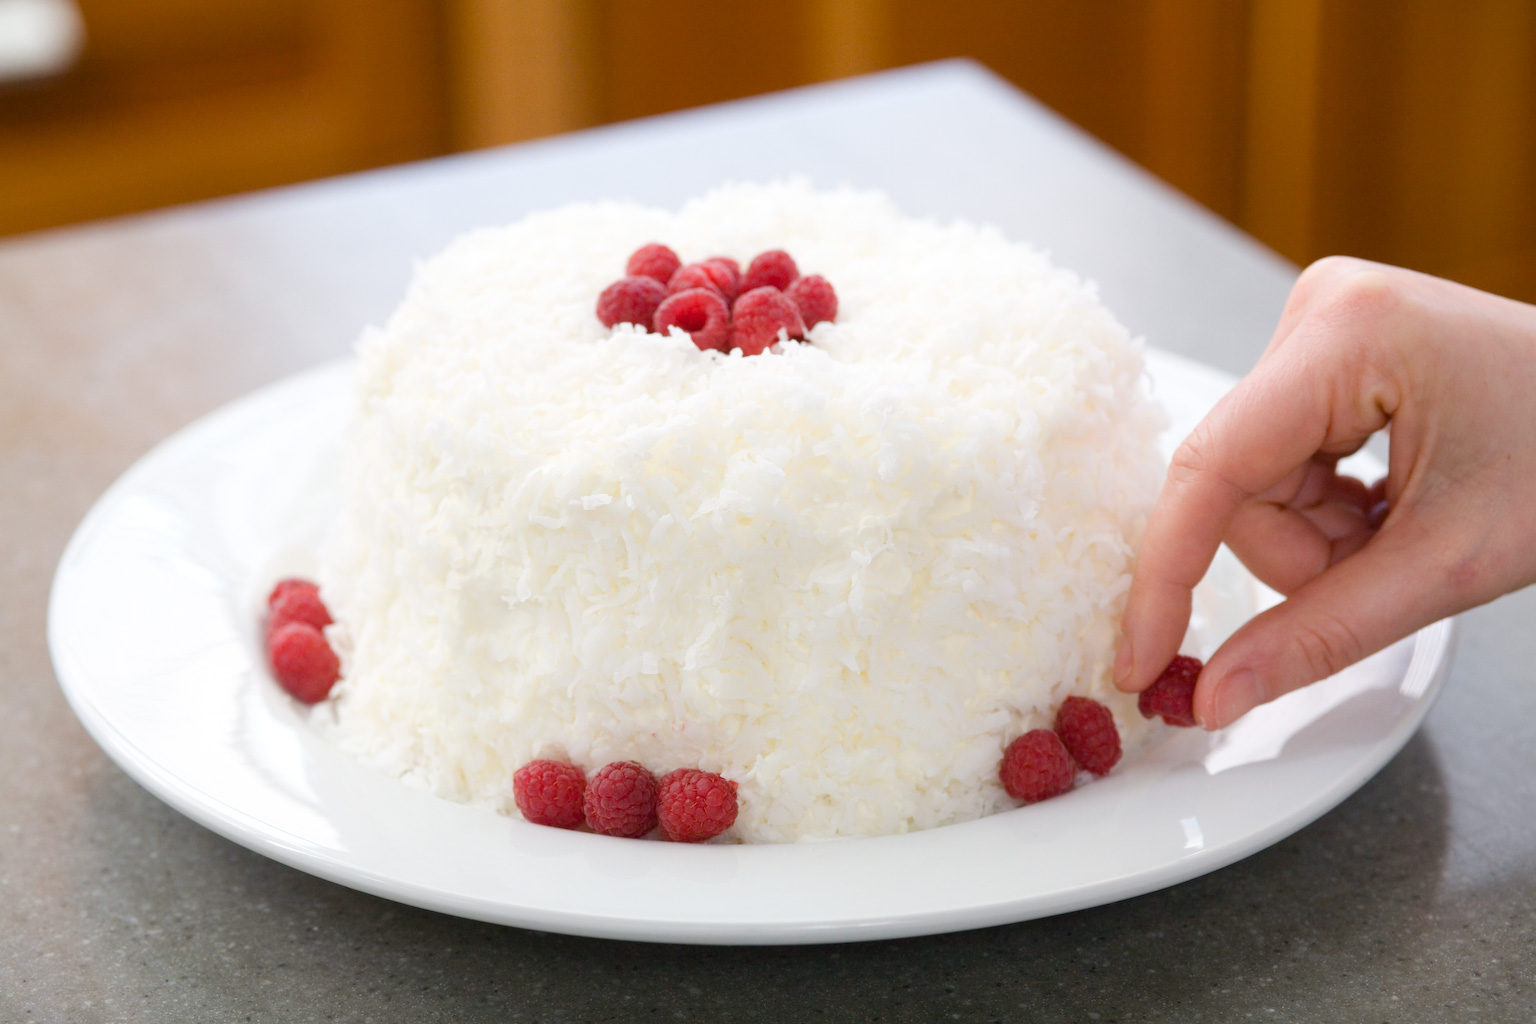 Kitchen Mania: Secrets to Raspberry-Coconut Cloud Cake